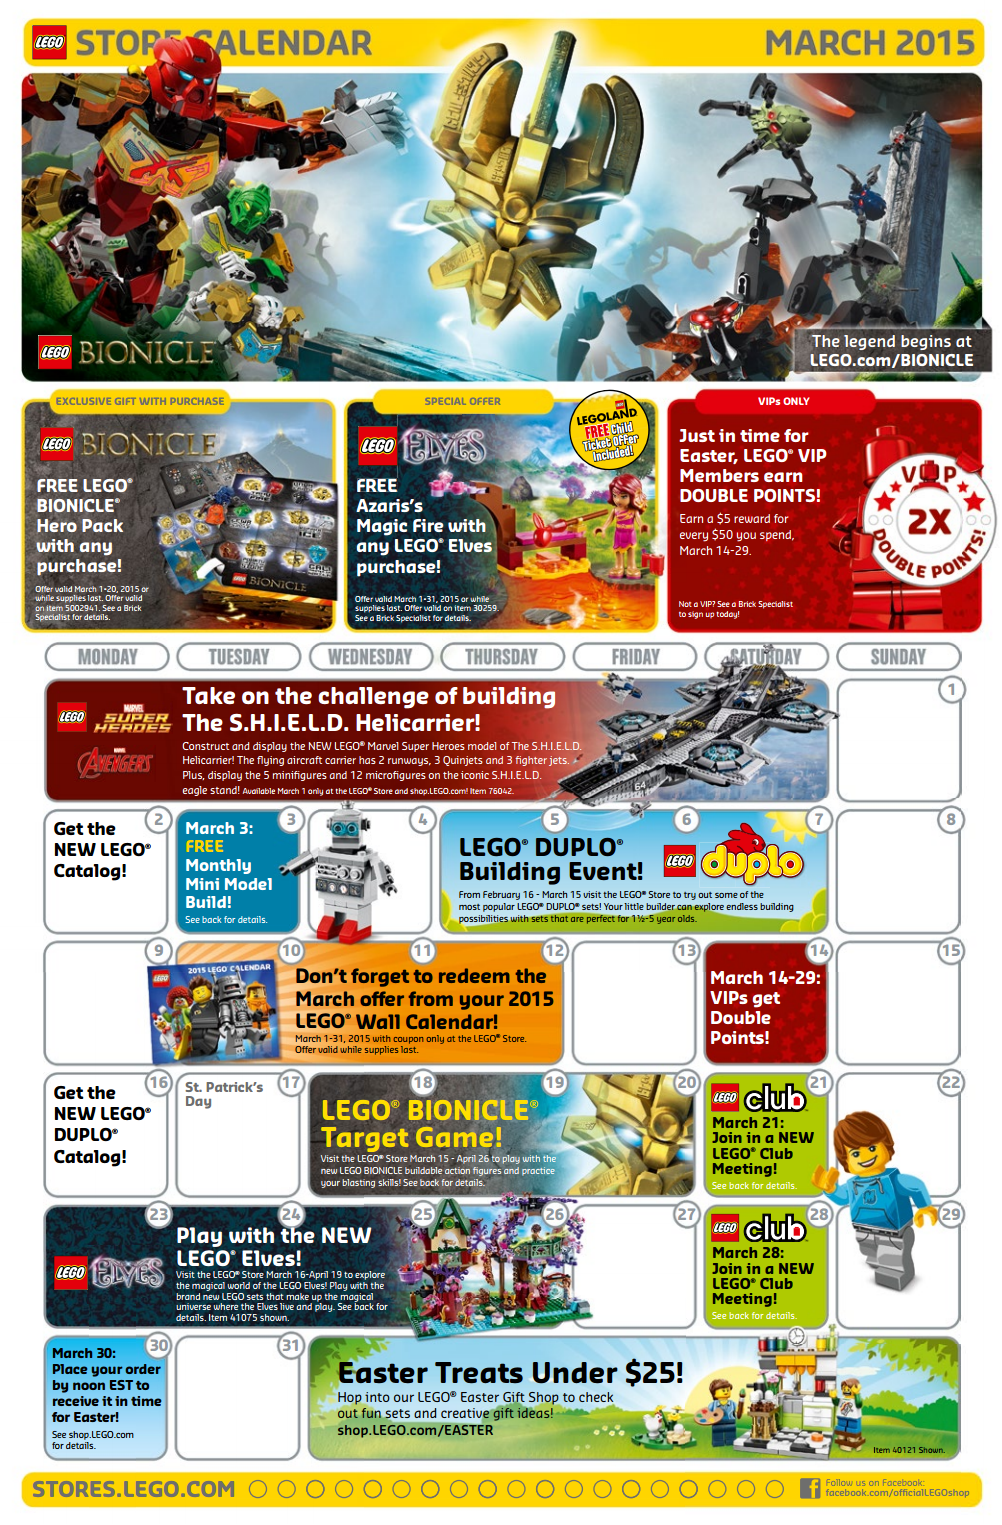 lego March events